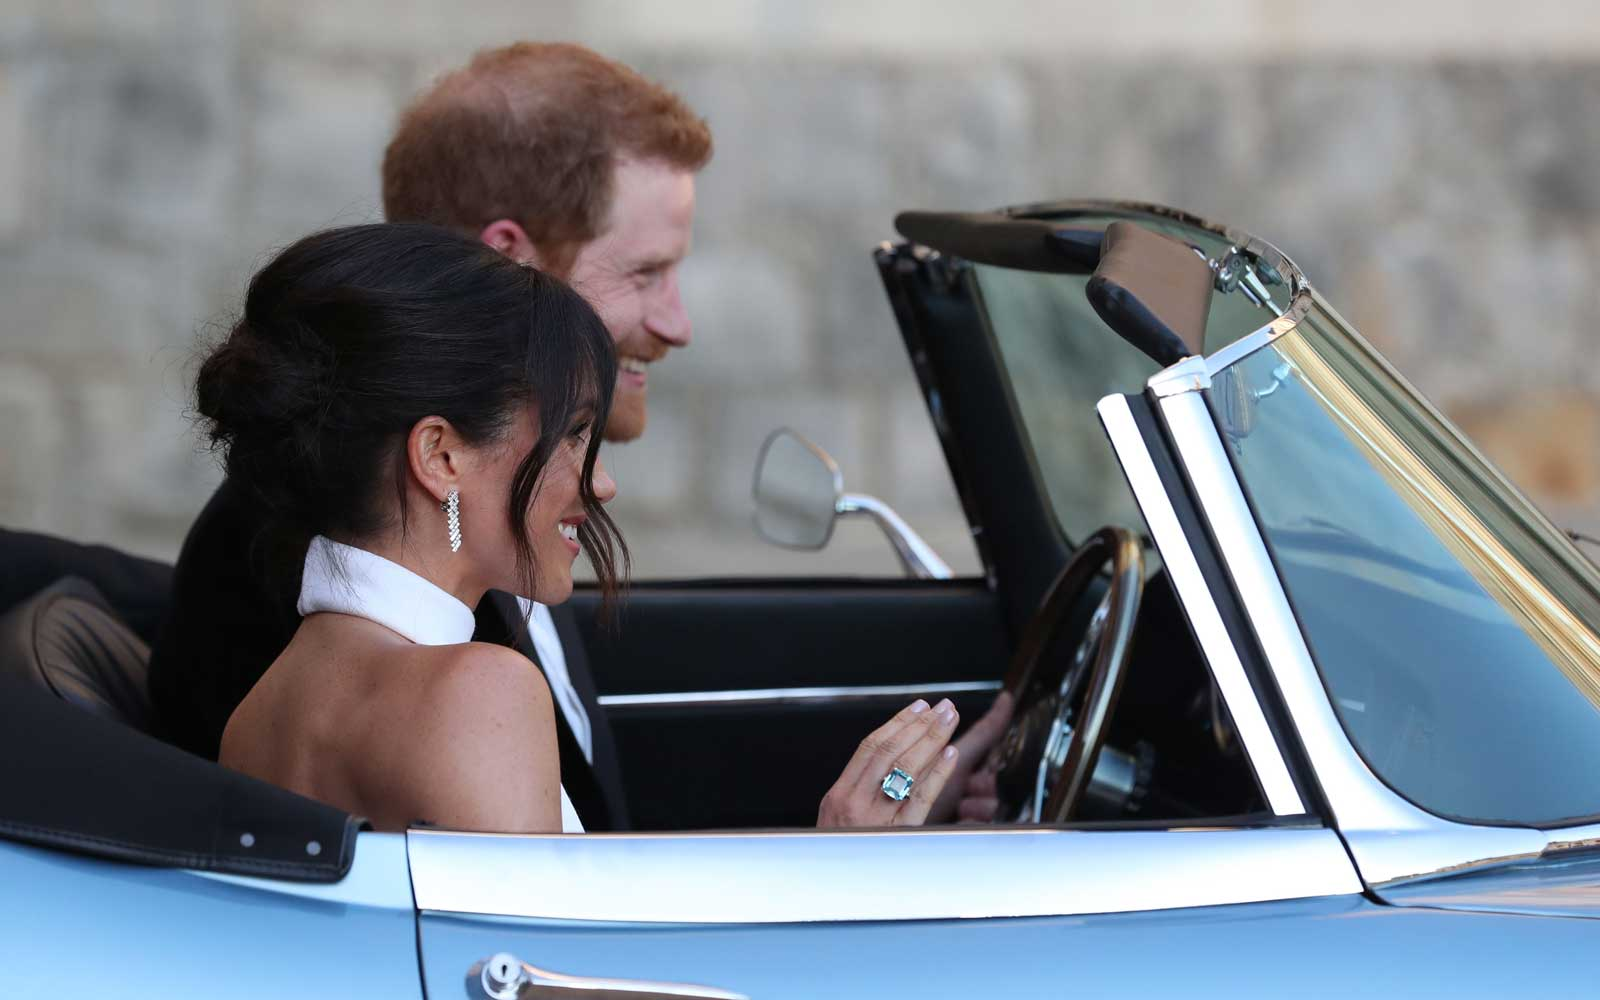 Britain's Prince Harry, Duke of Sussex and Meghan Markle, Duchess of Sussex leave Windsor Castle in Windsor on May 19, 2018 in an E-Type Jaguar after their wedding